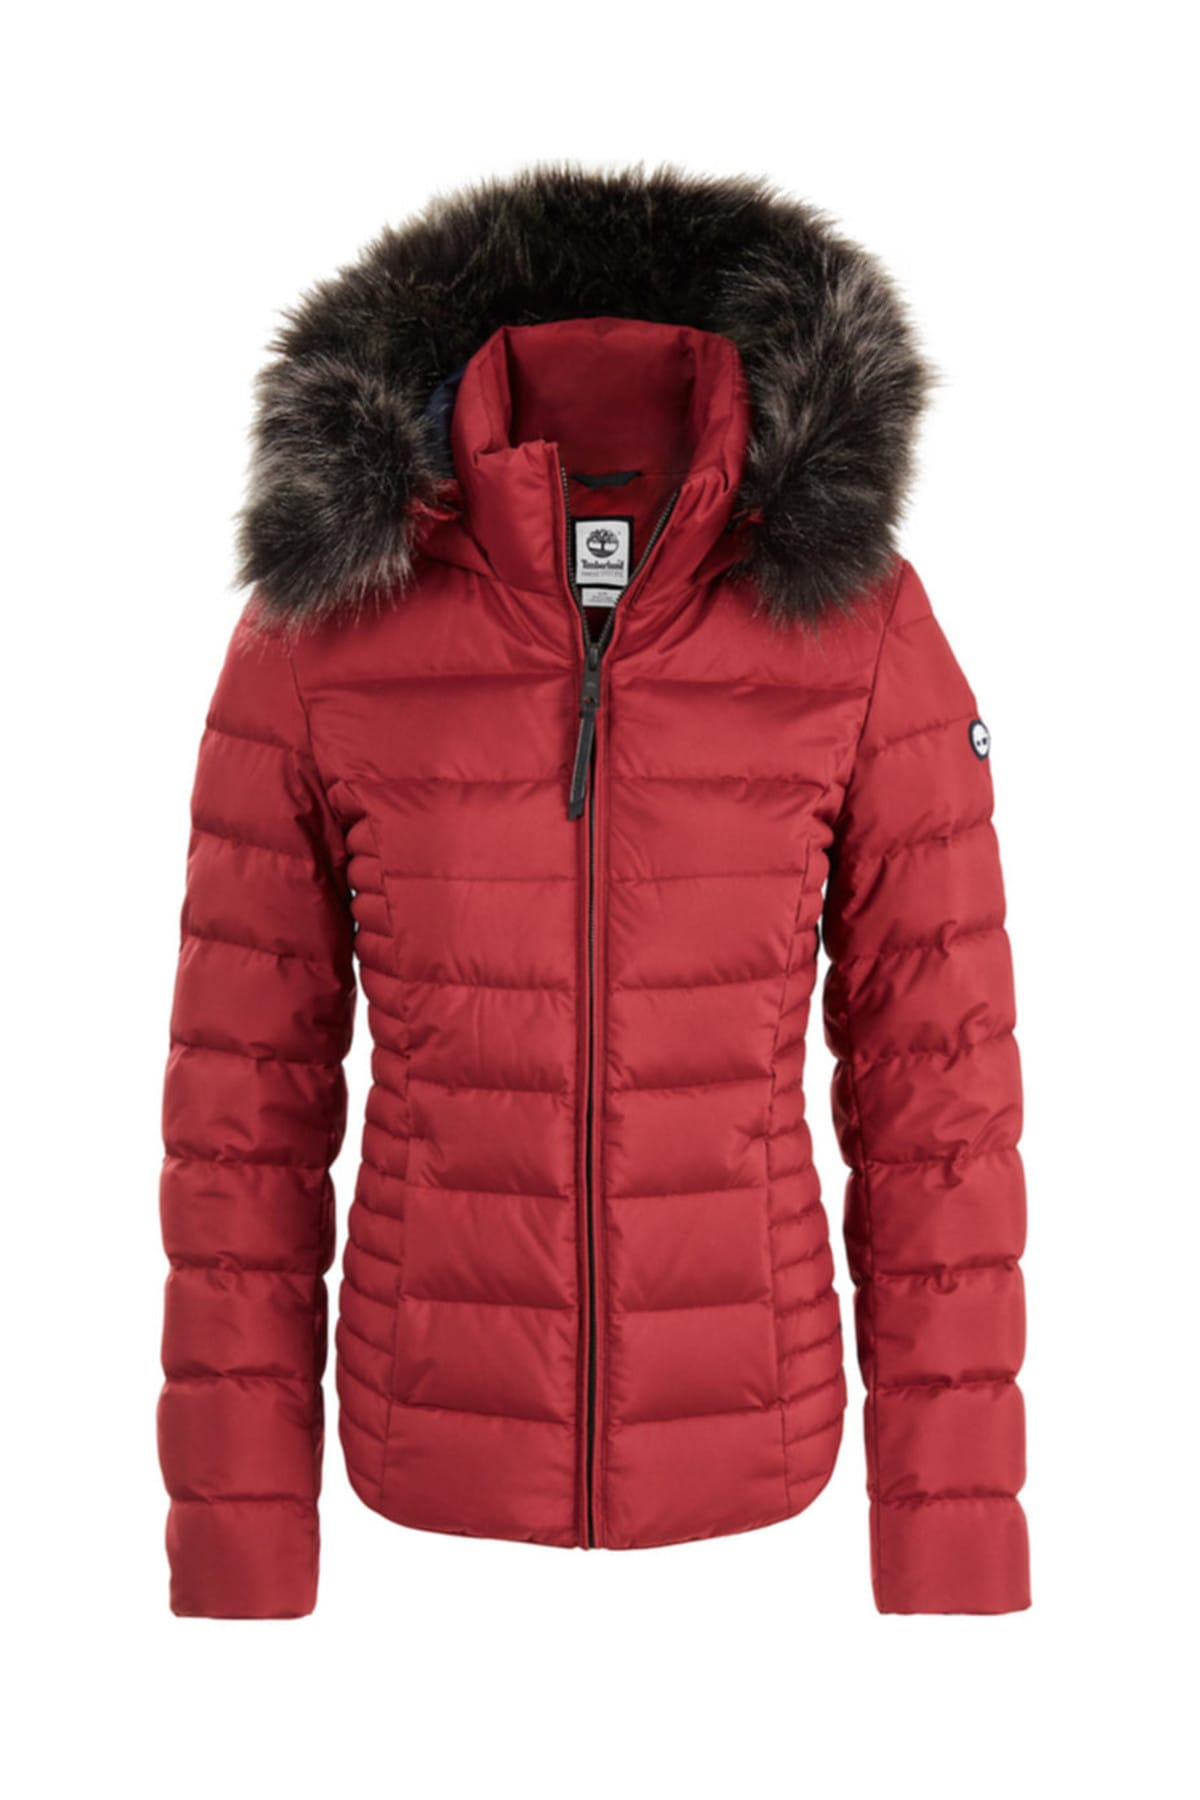 Timberland Quilted Hooded Jacket Mid Weight Kadın Mont – 1189.0 TL